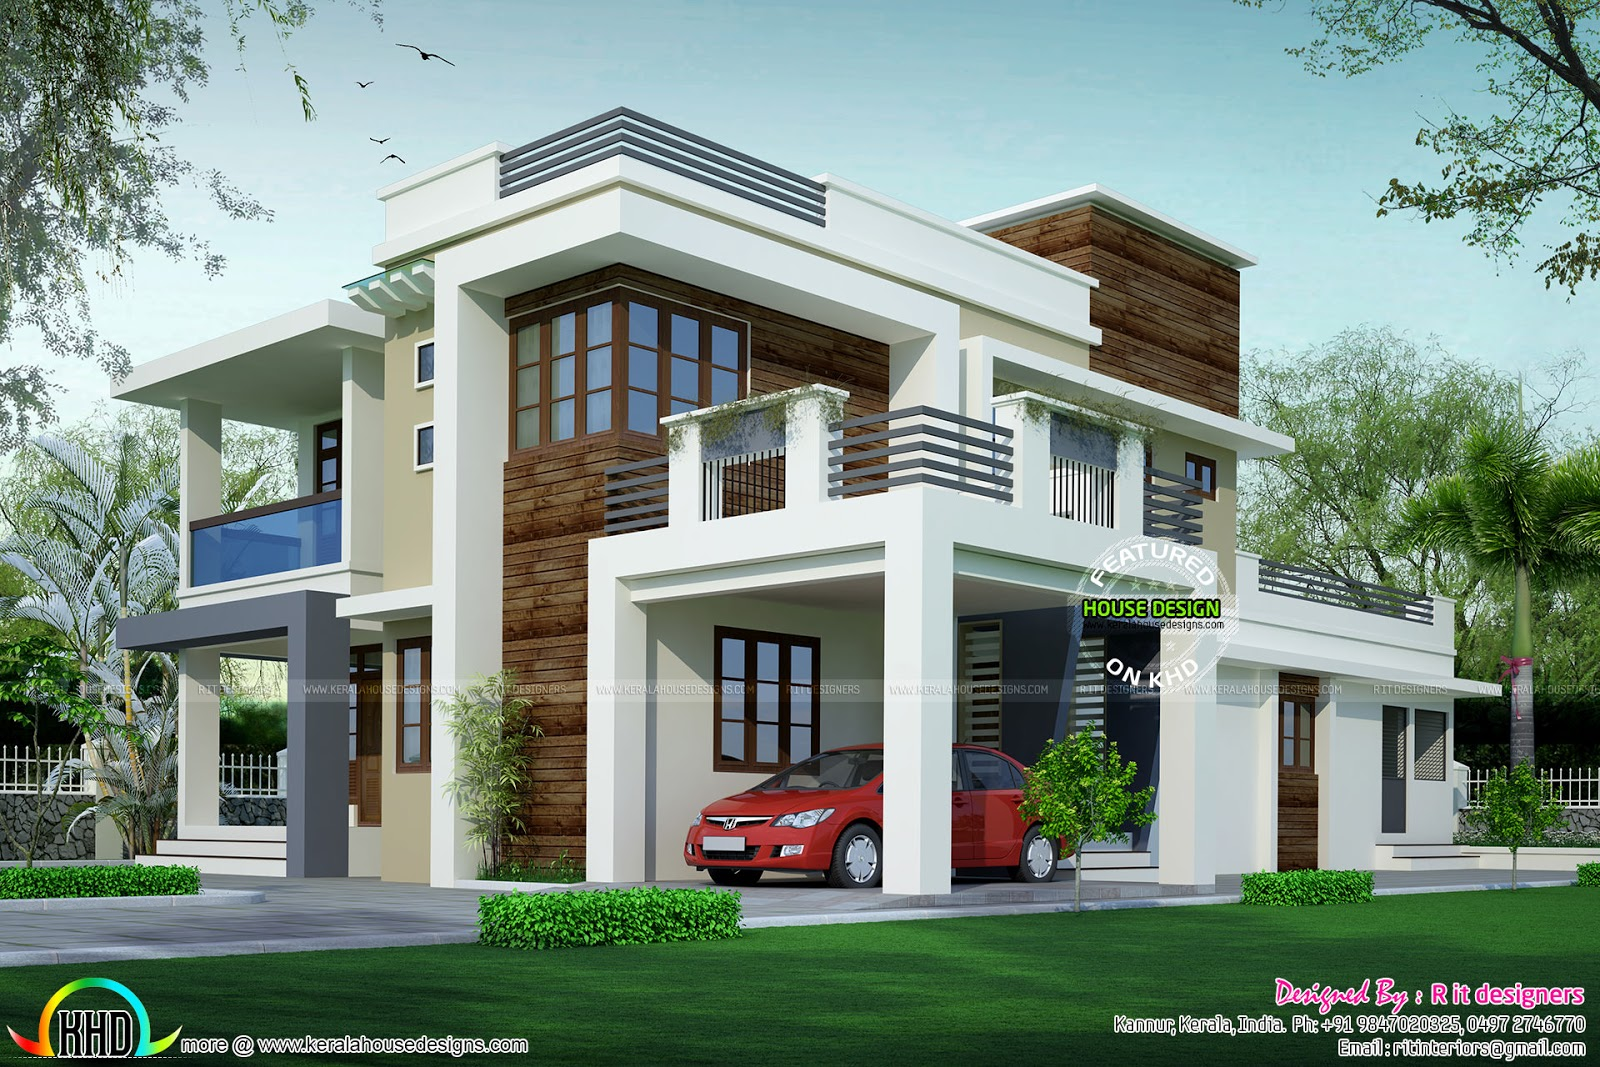 House design contemporary model kerala home design and for Kerala modern house designs